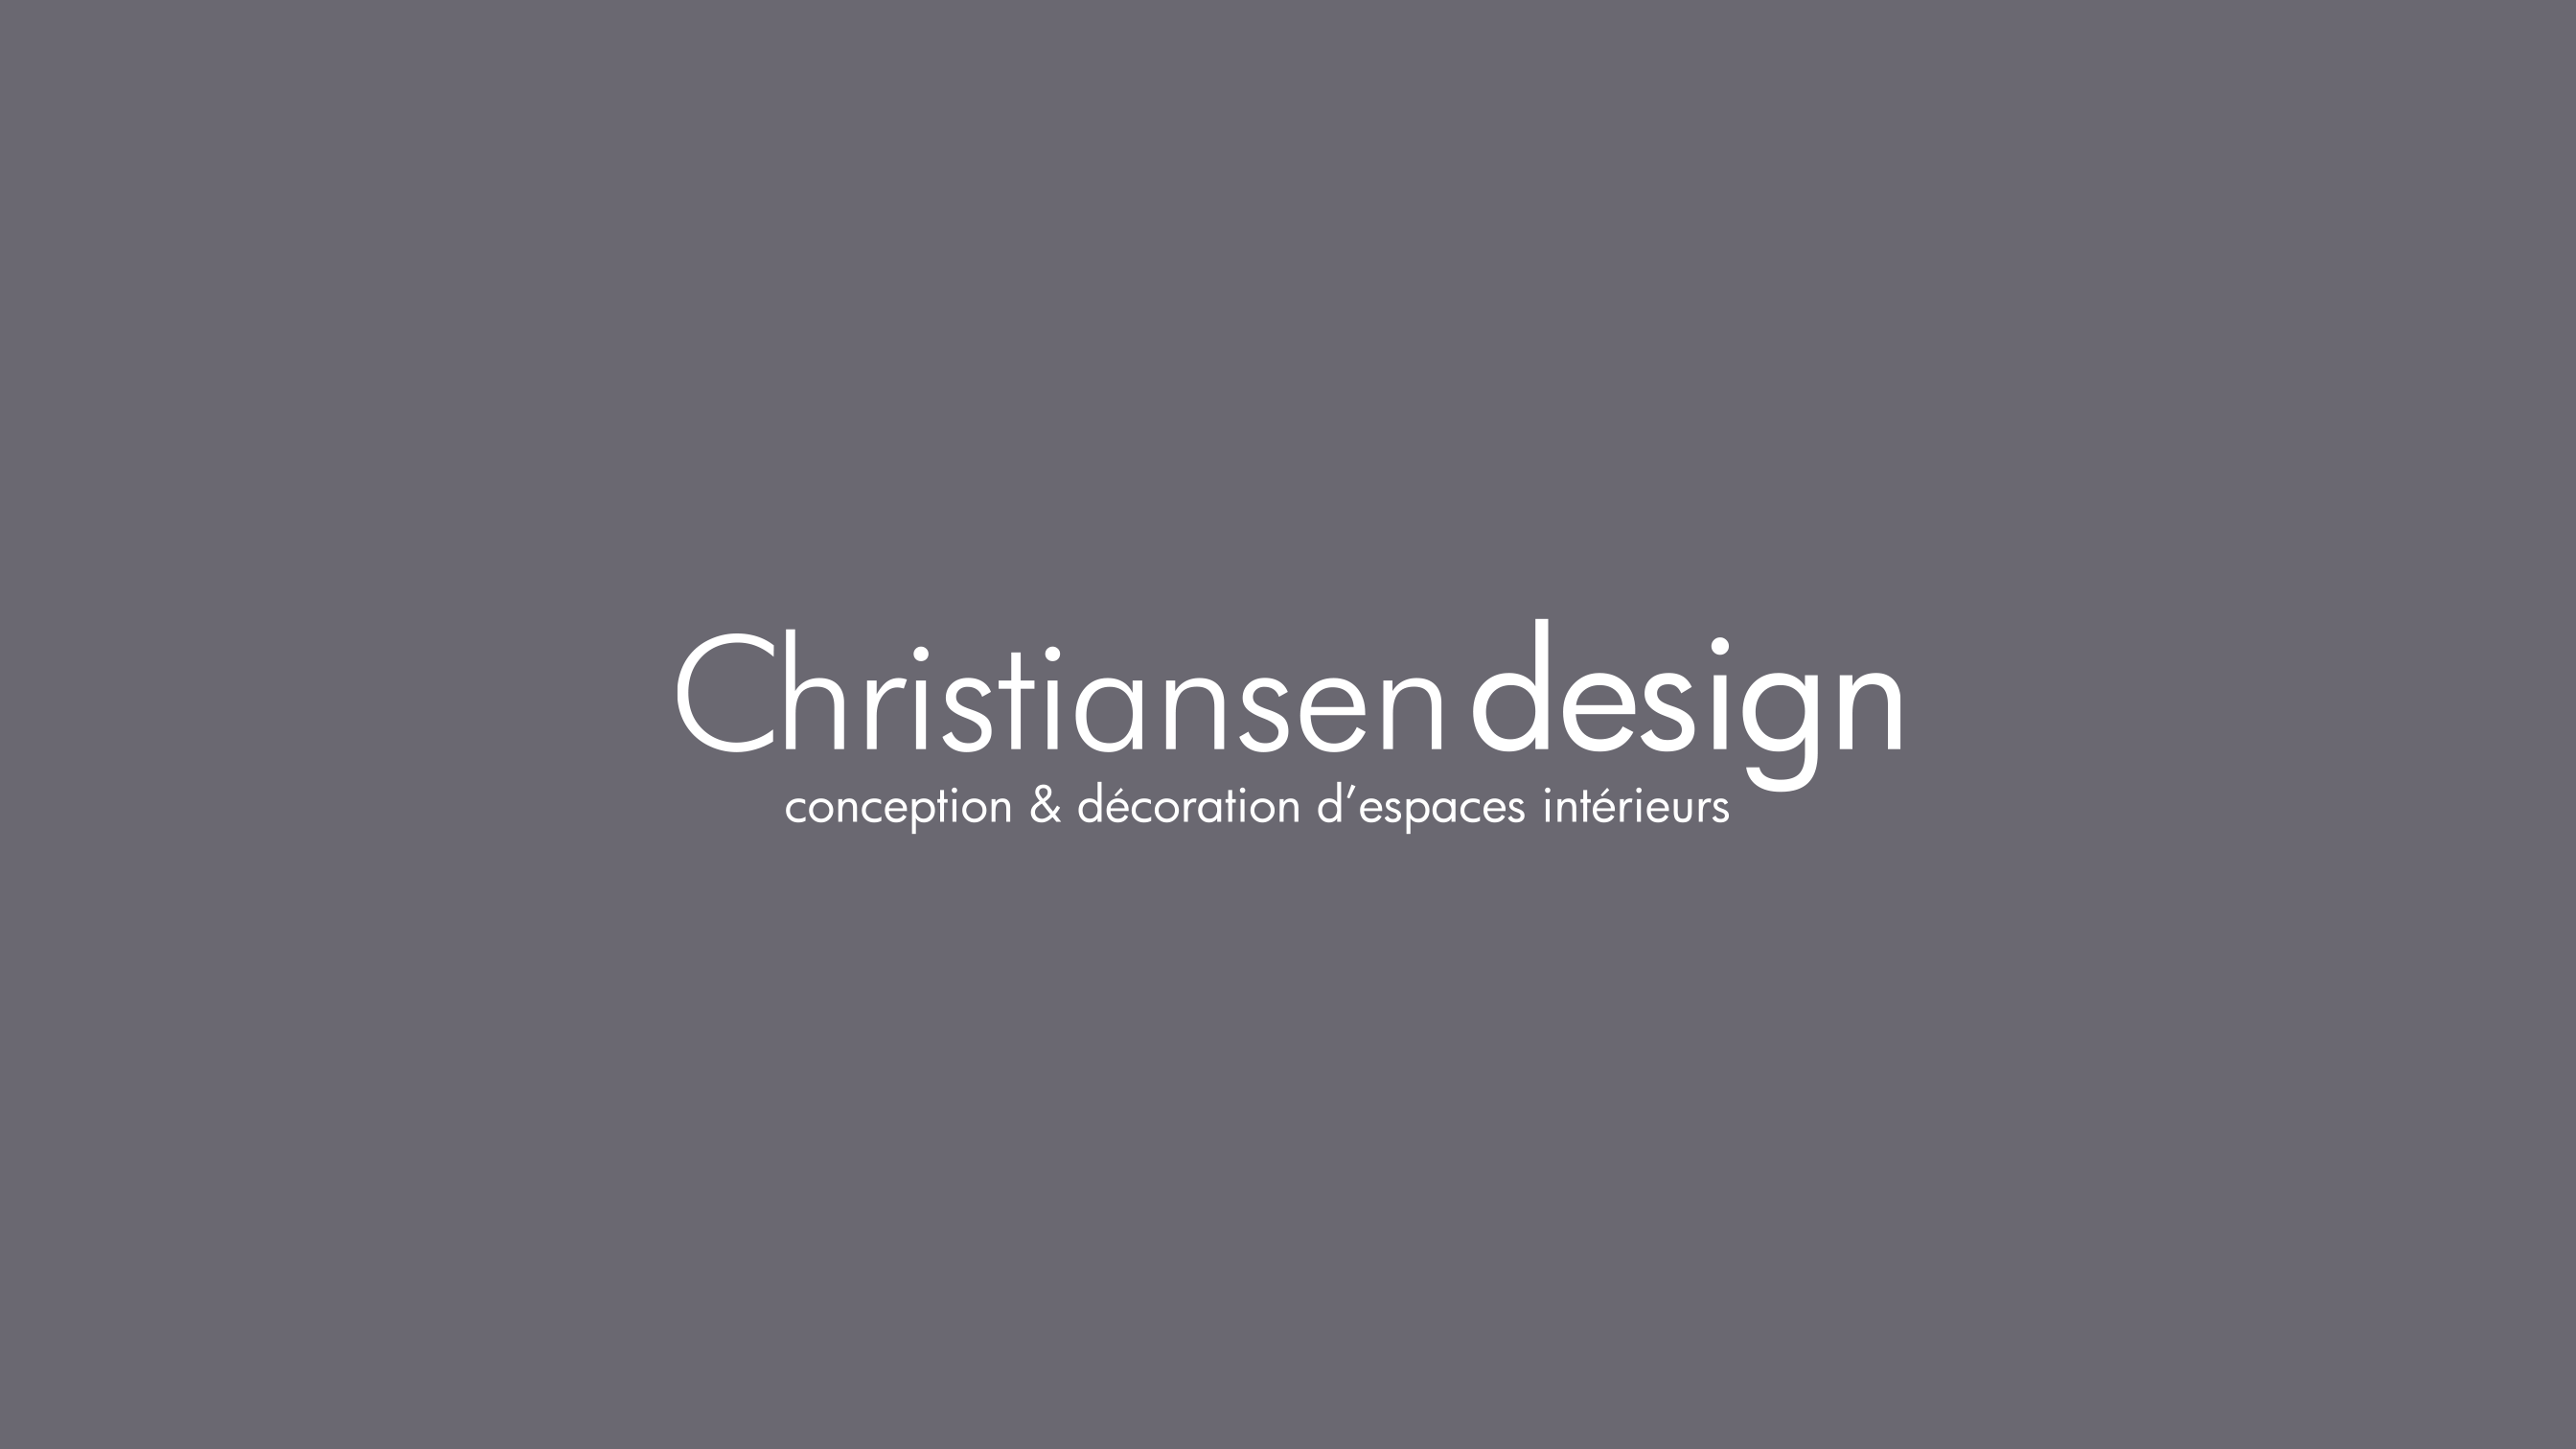 christiansendesign-logotype-pikteo